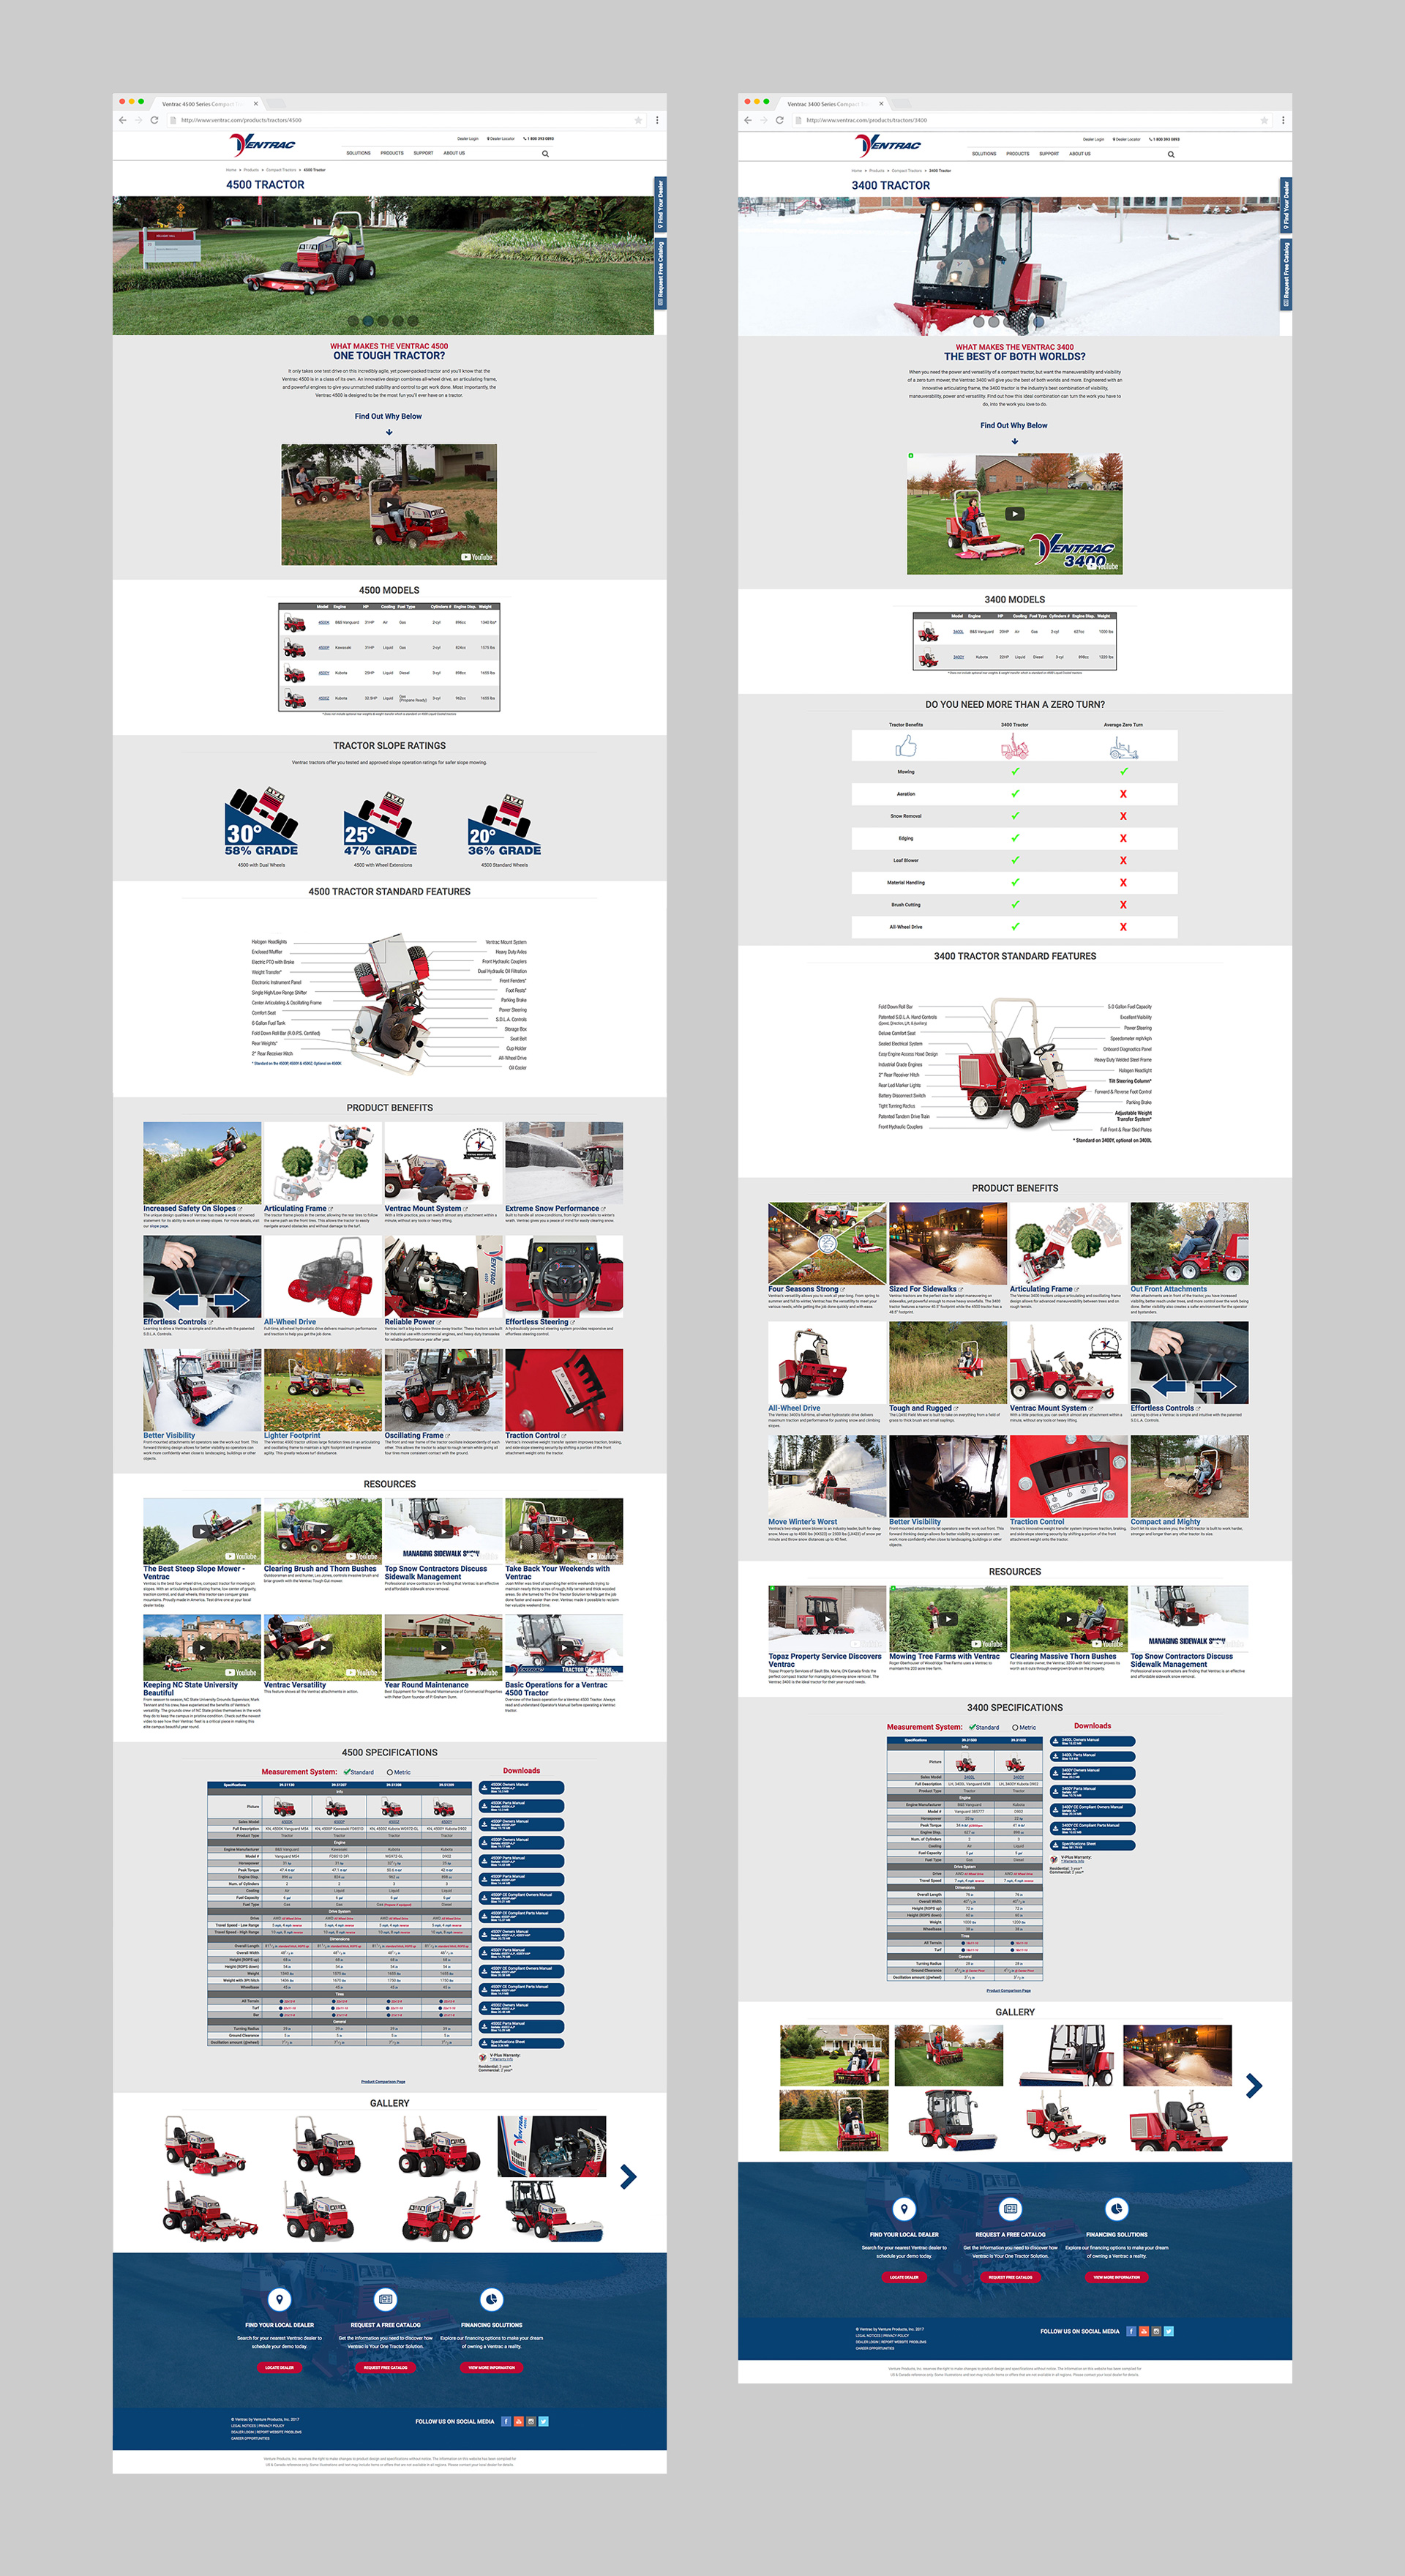 Ventrac Tractor Product Pages Redesigns